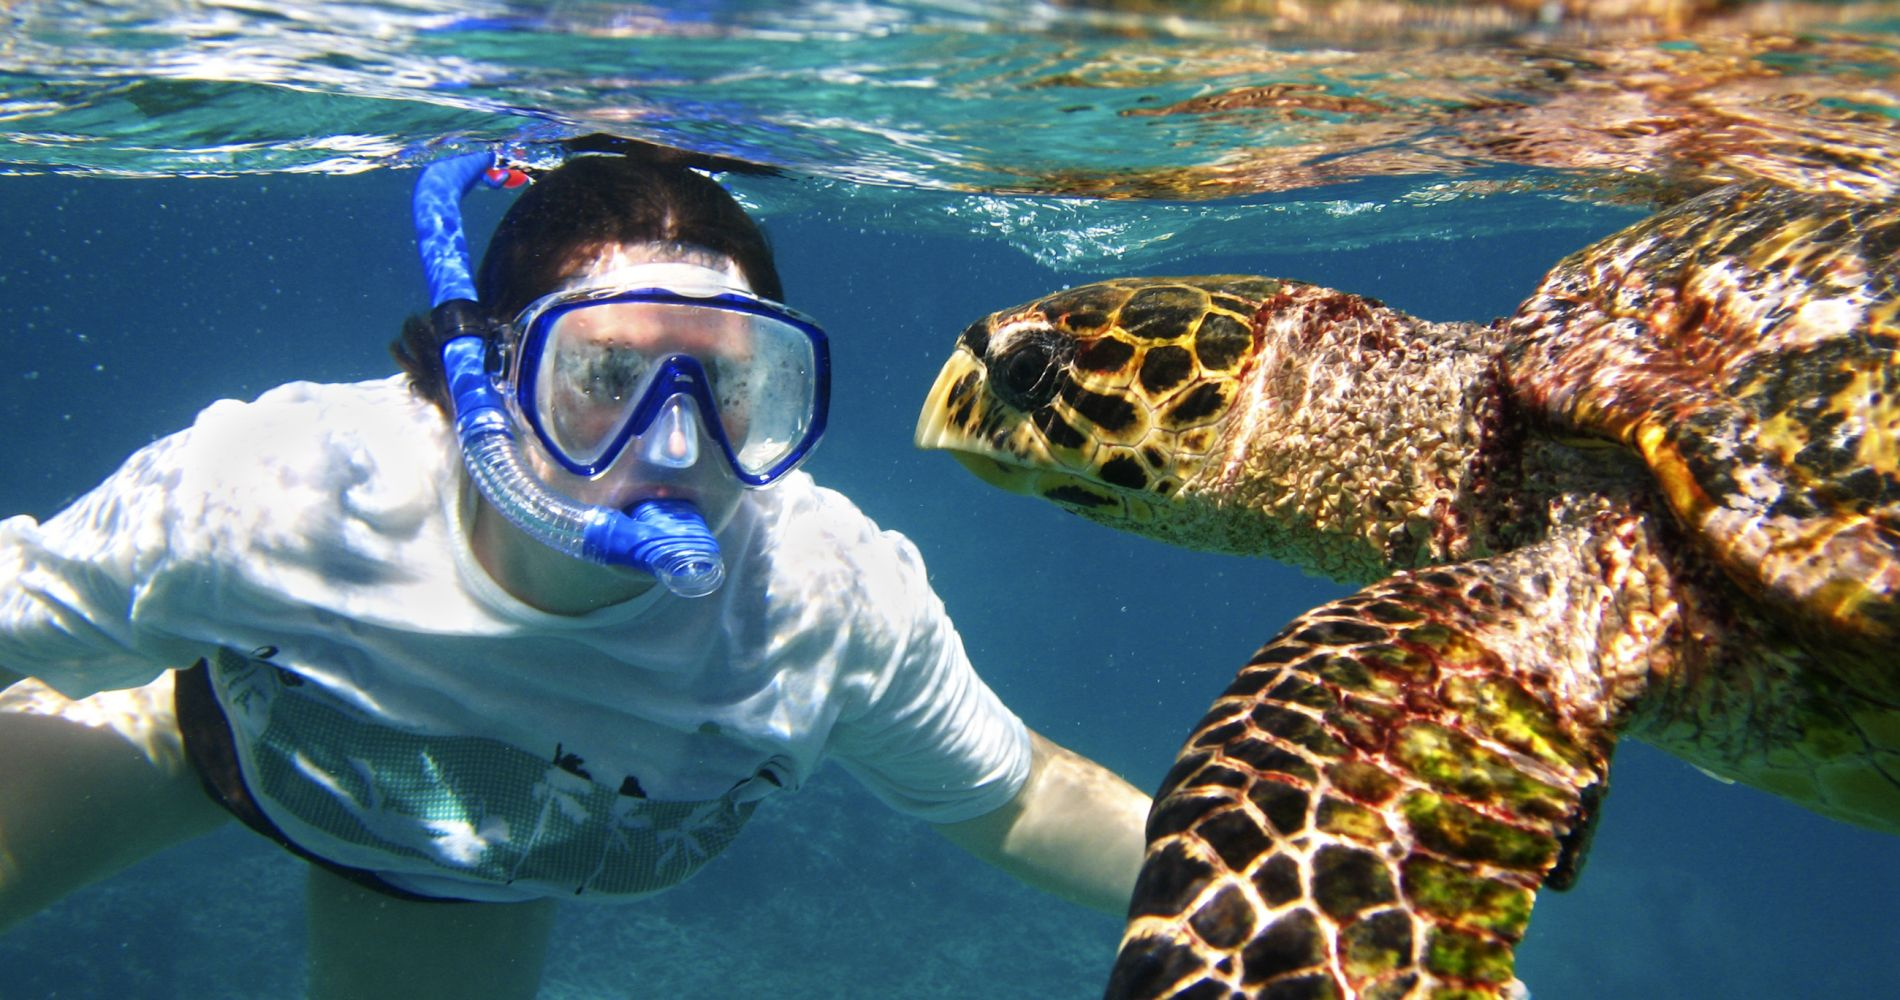 Turtles & Shipwrecks Snorkeling Tour in Barbados for Two